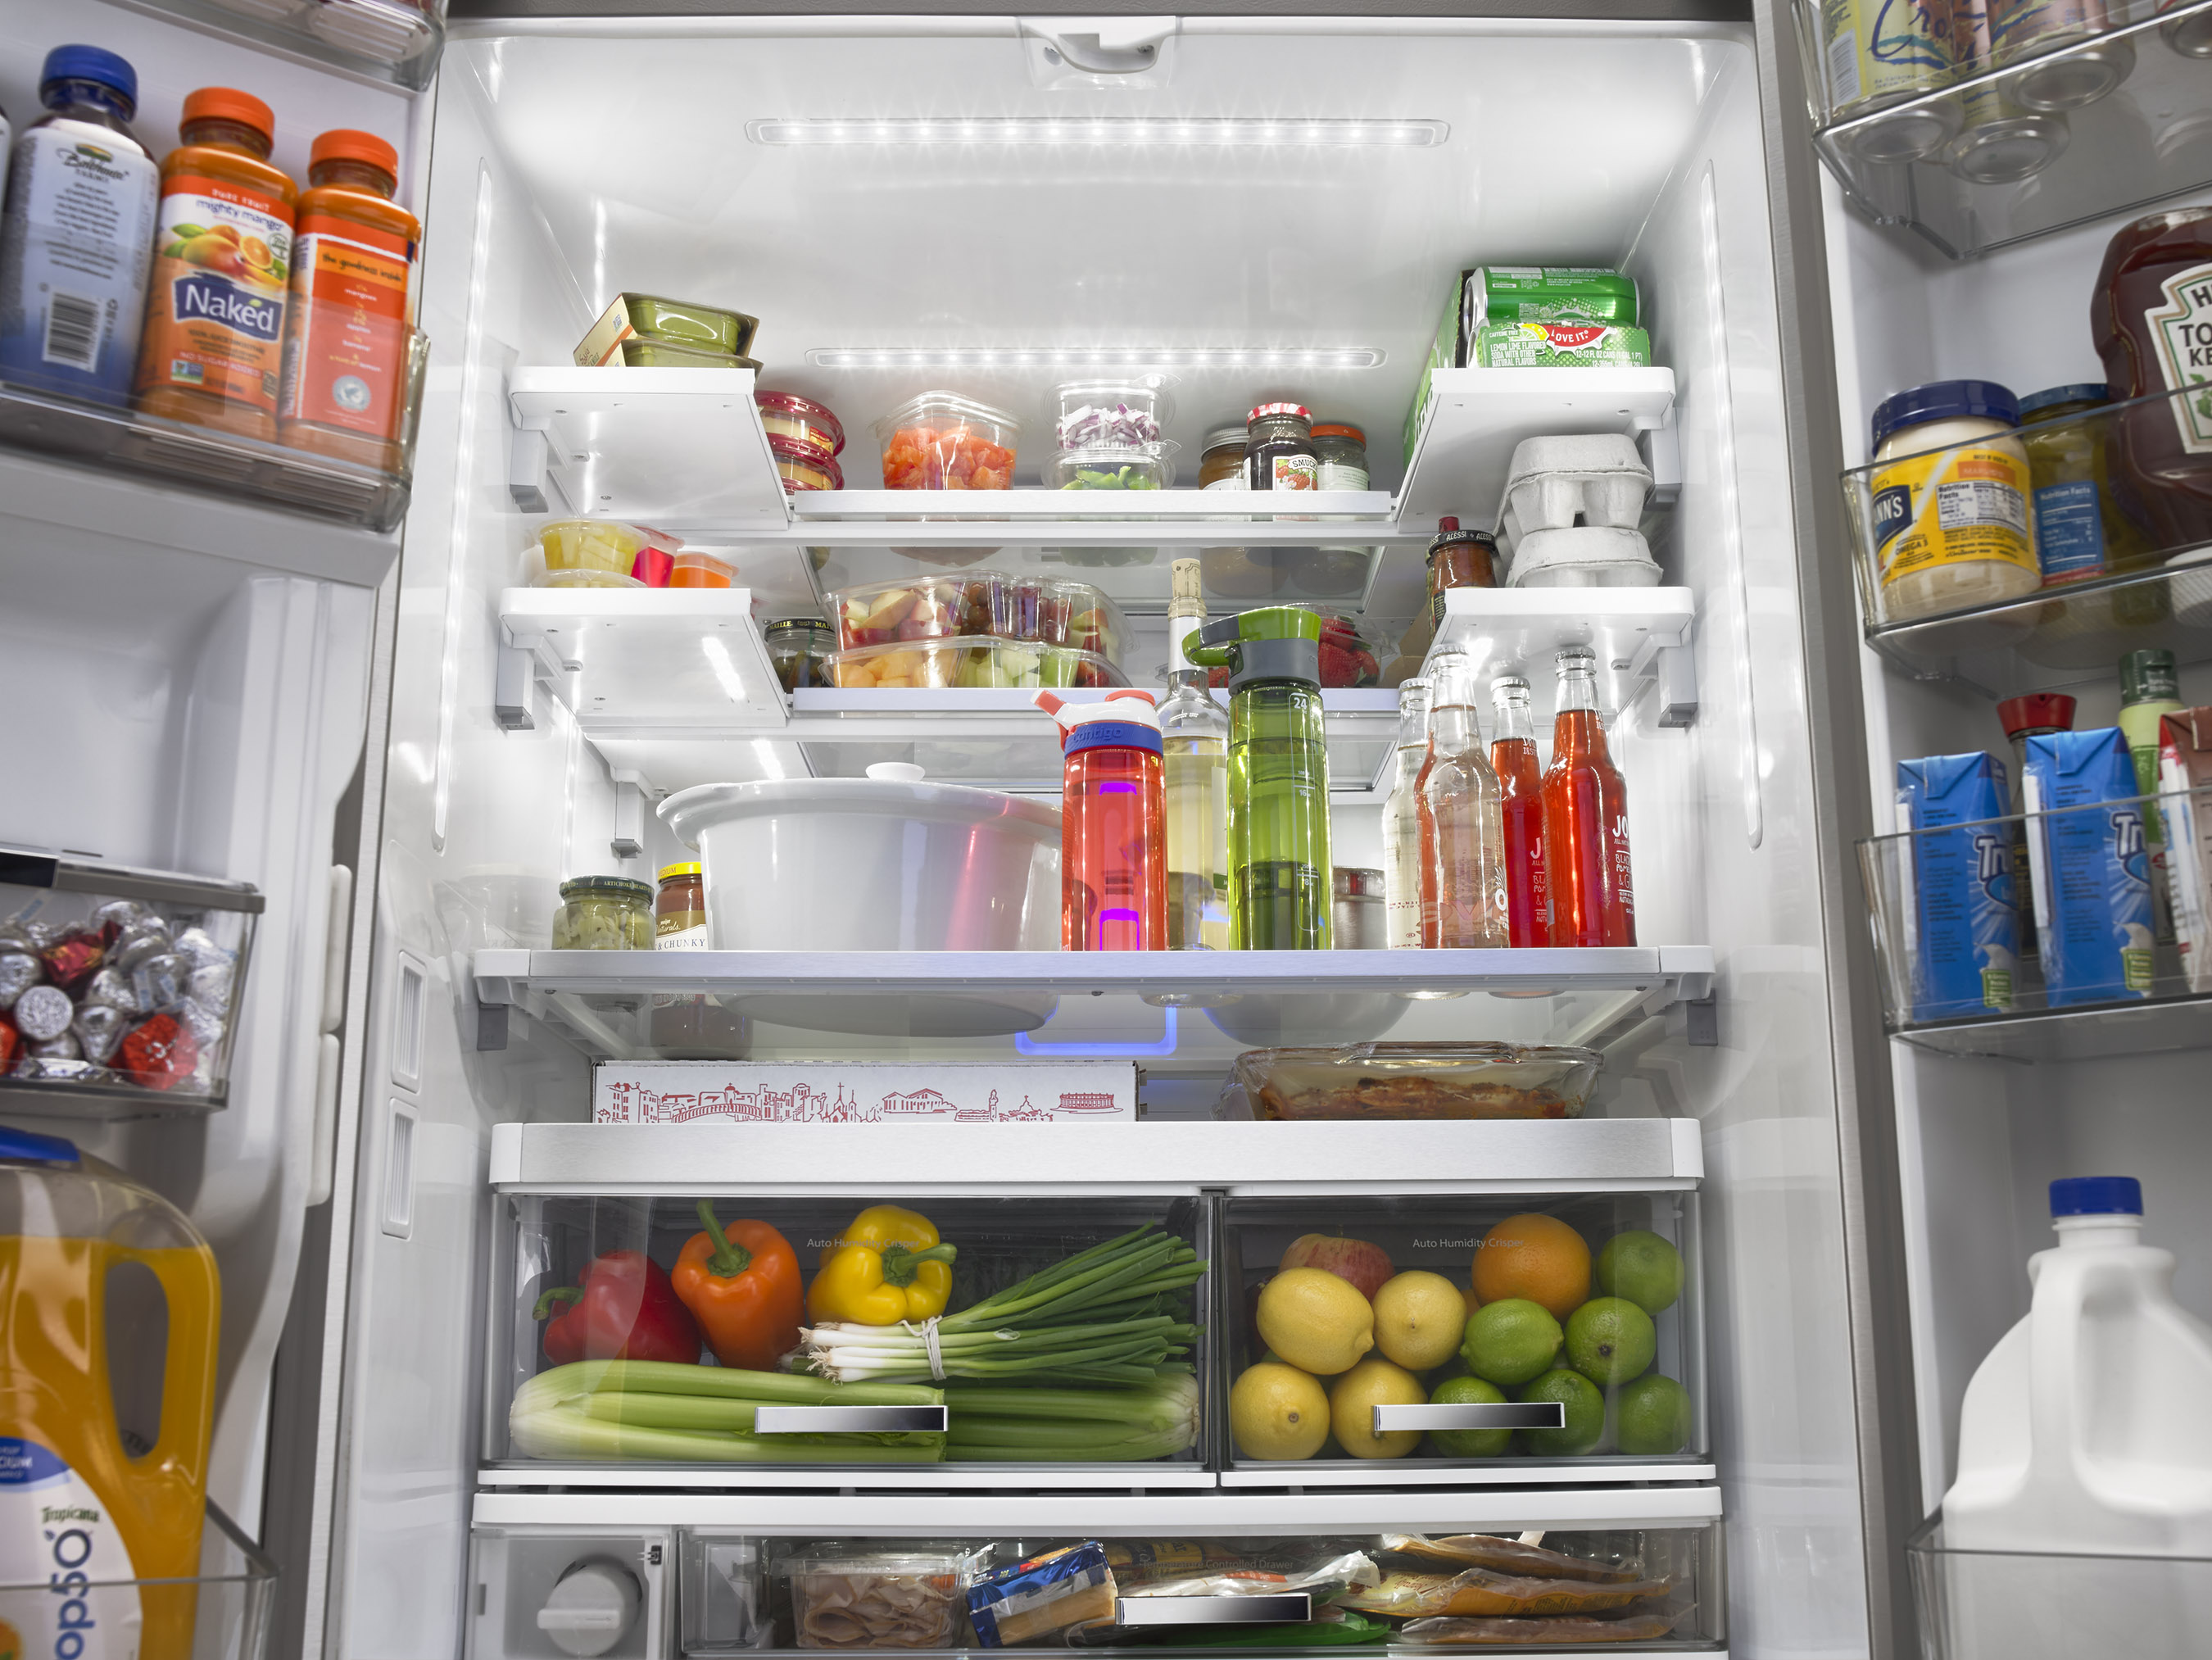 Completely re-imagined on the inside, the Whirlpool® Smart French Door Refrigerator is inspired by the pantry and designed to use space more efficiently so families can fit and find it all.